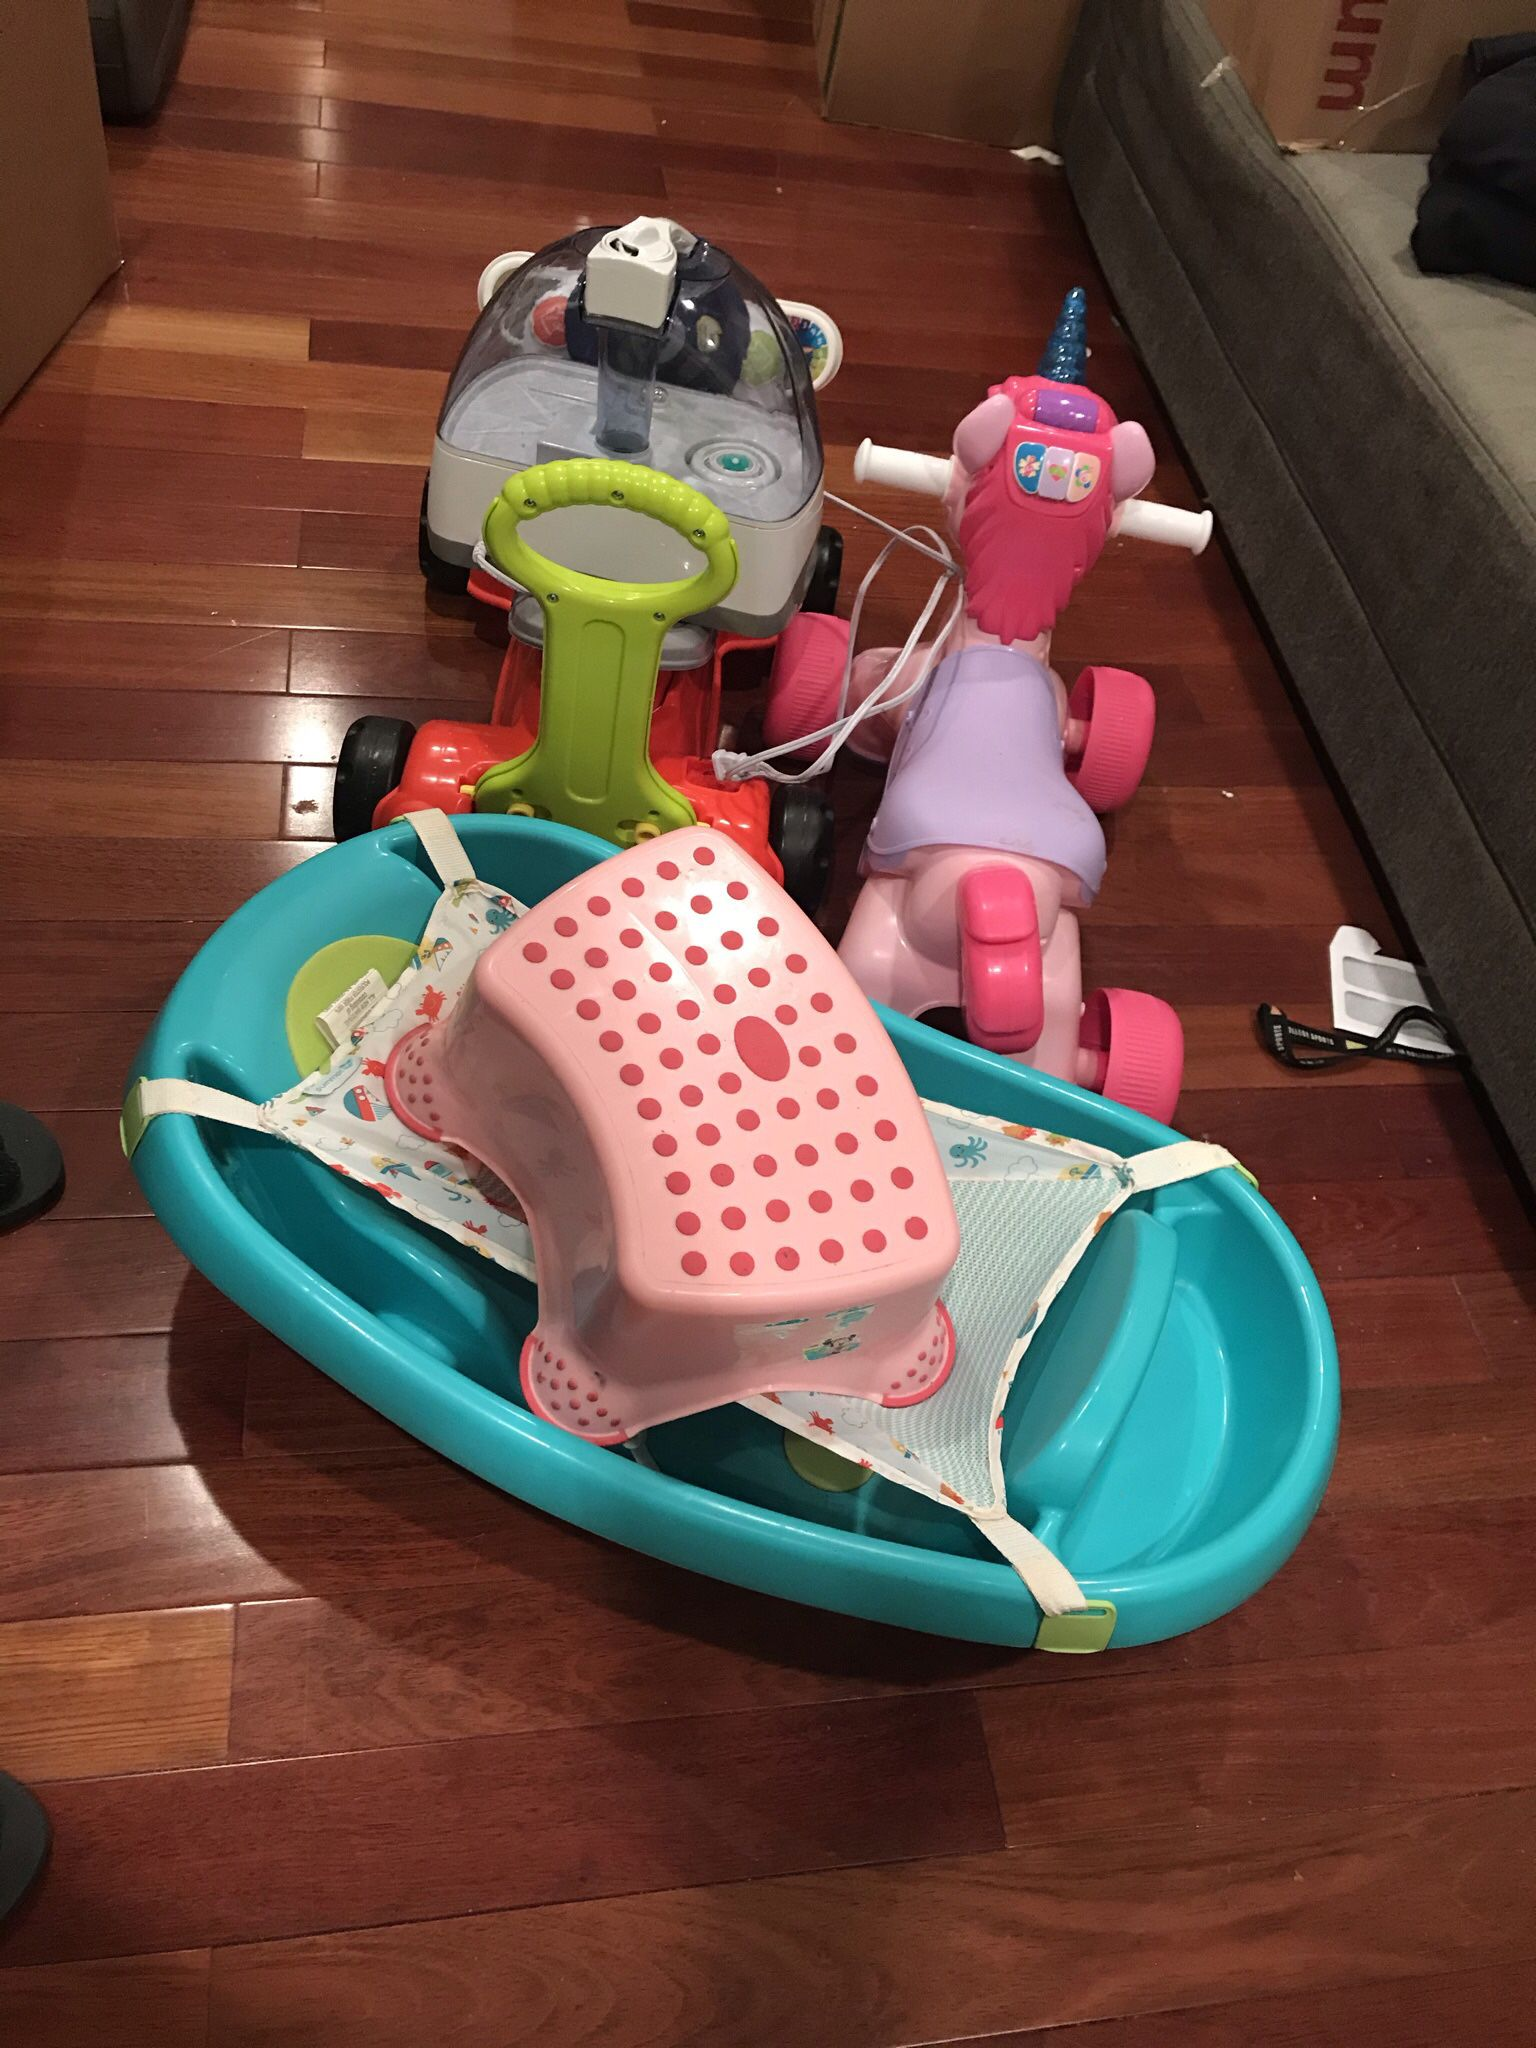 Baby Toys, Bathtub And Breast Pump For Free